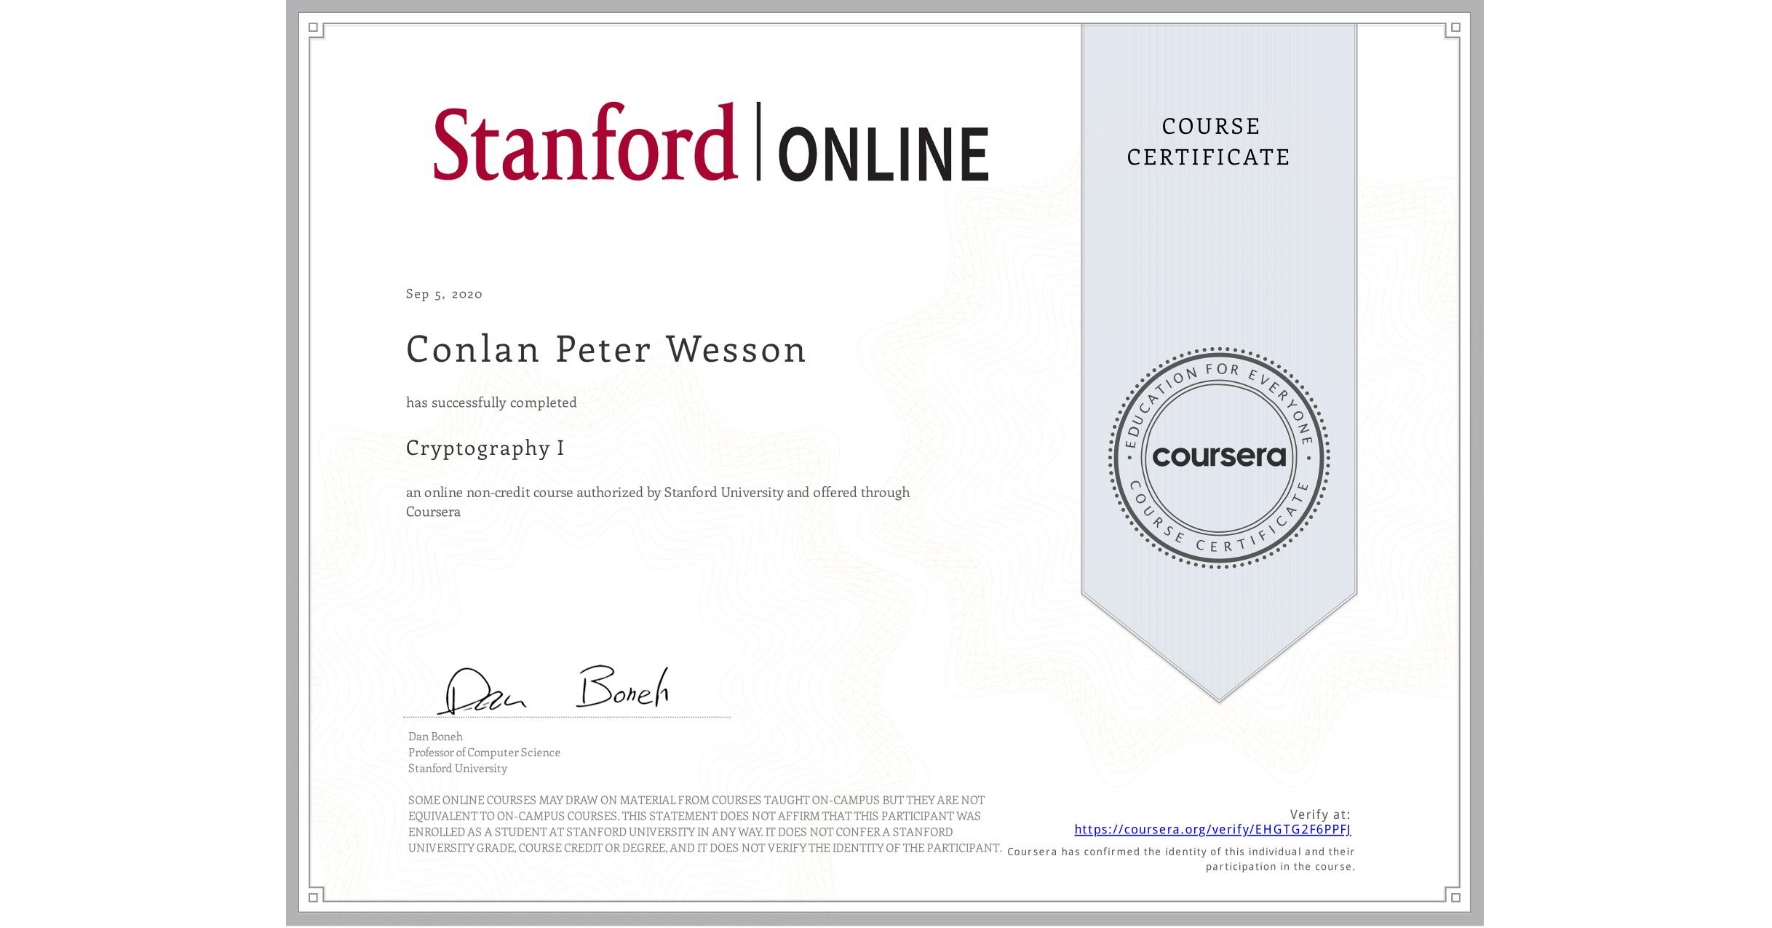 View certificate for Conlan Peter Wesson, Cryptography I, an online non-credit course authorized by Stanford University and offered through Coursera